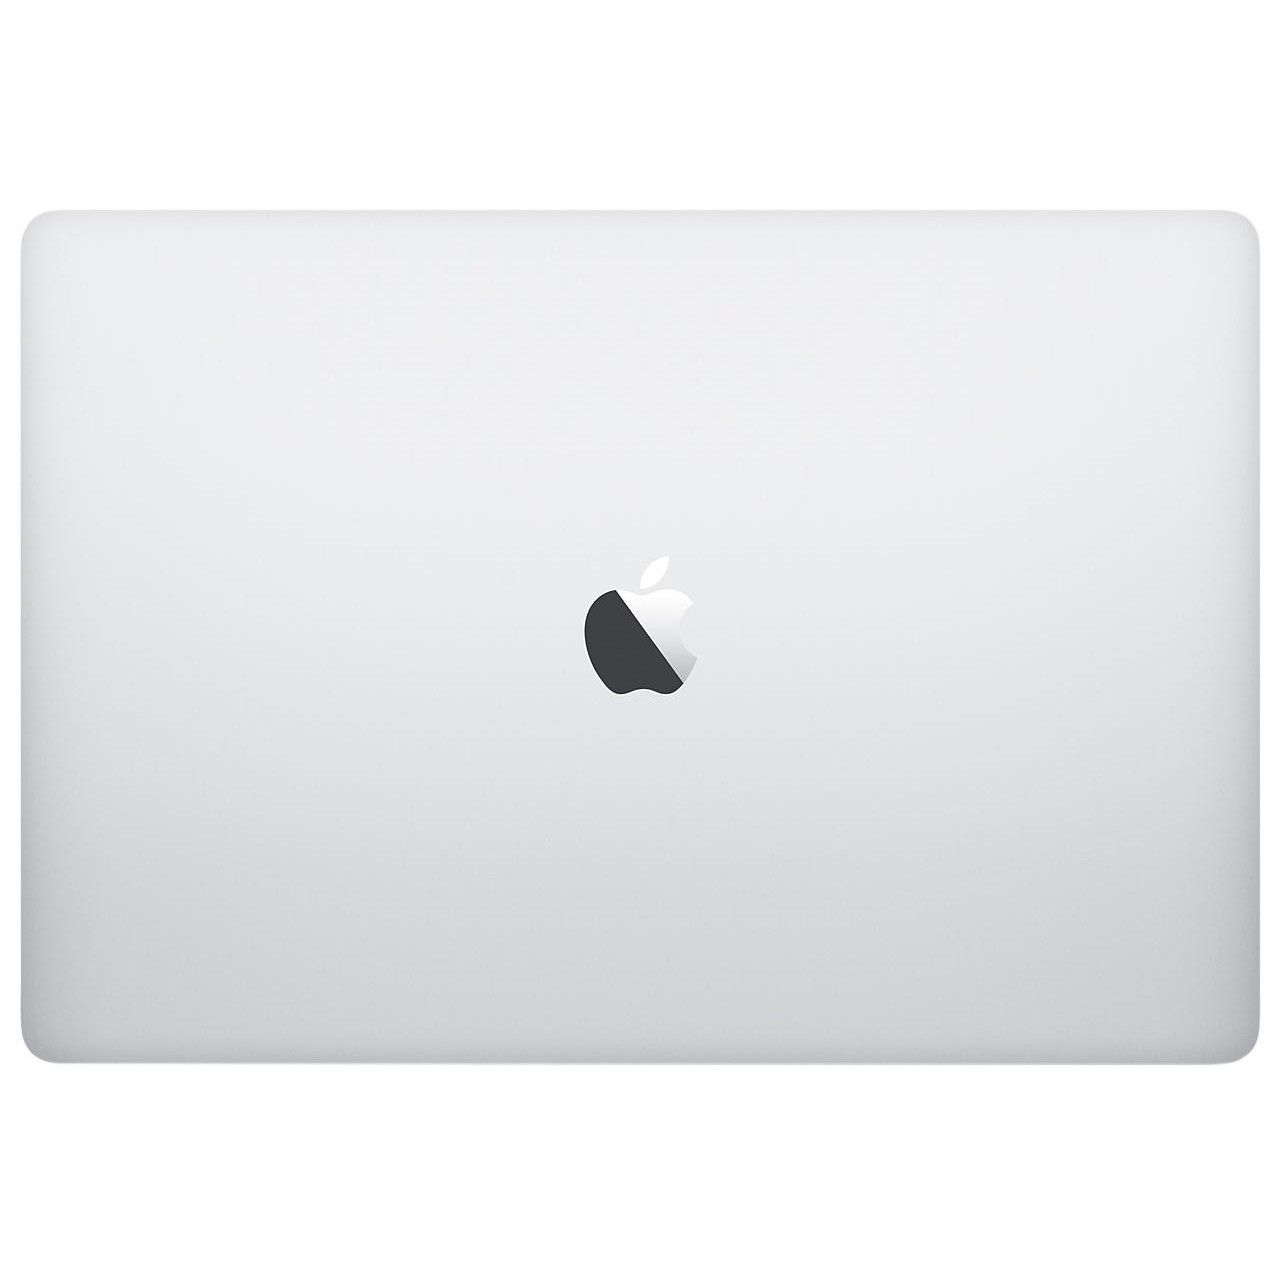 "Ноутбук Apple MacBook Pro 15"" Touch Bar 256 GB SSD Silver (MPTU2), картинка 4"